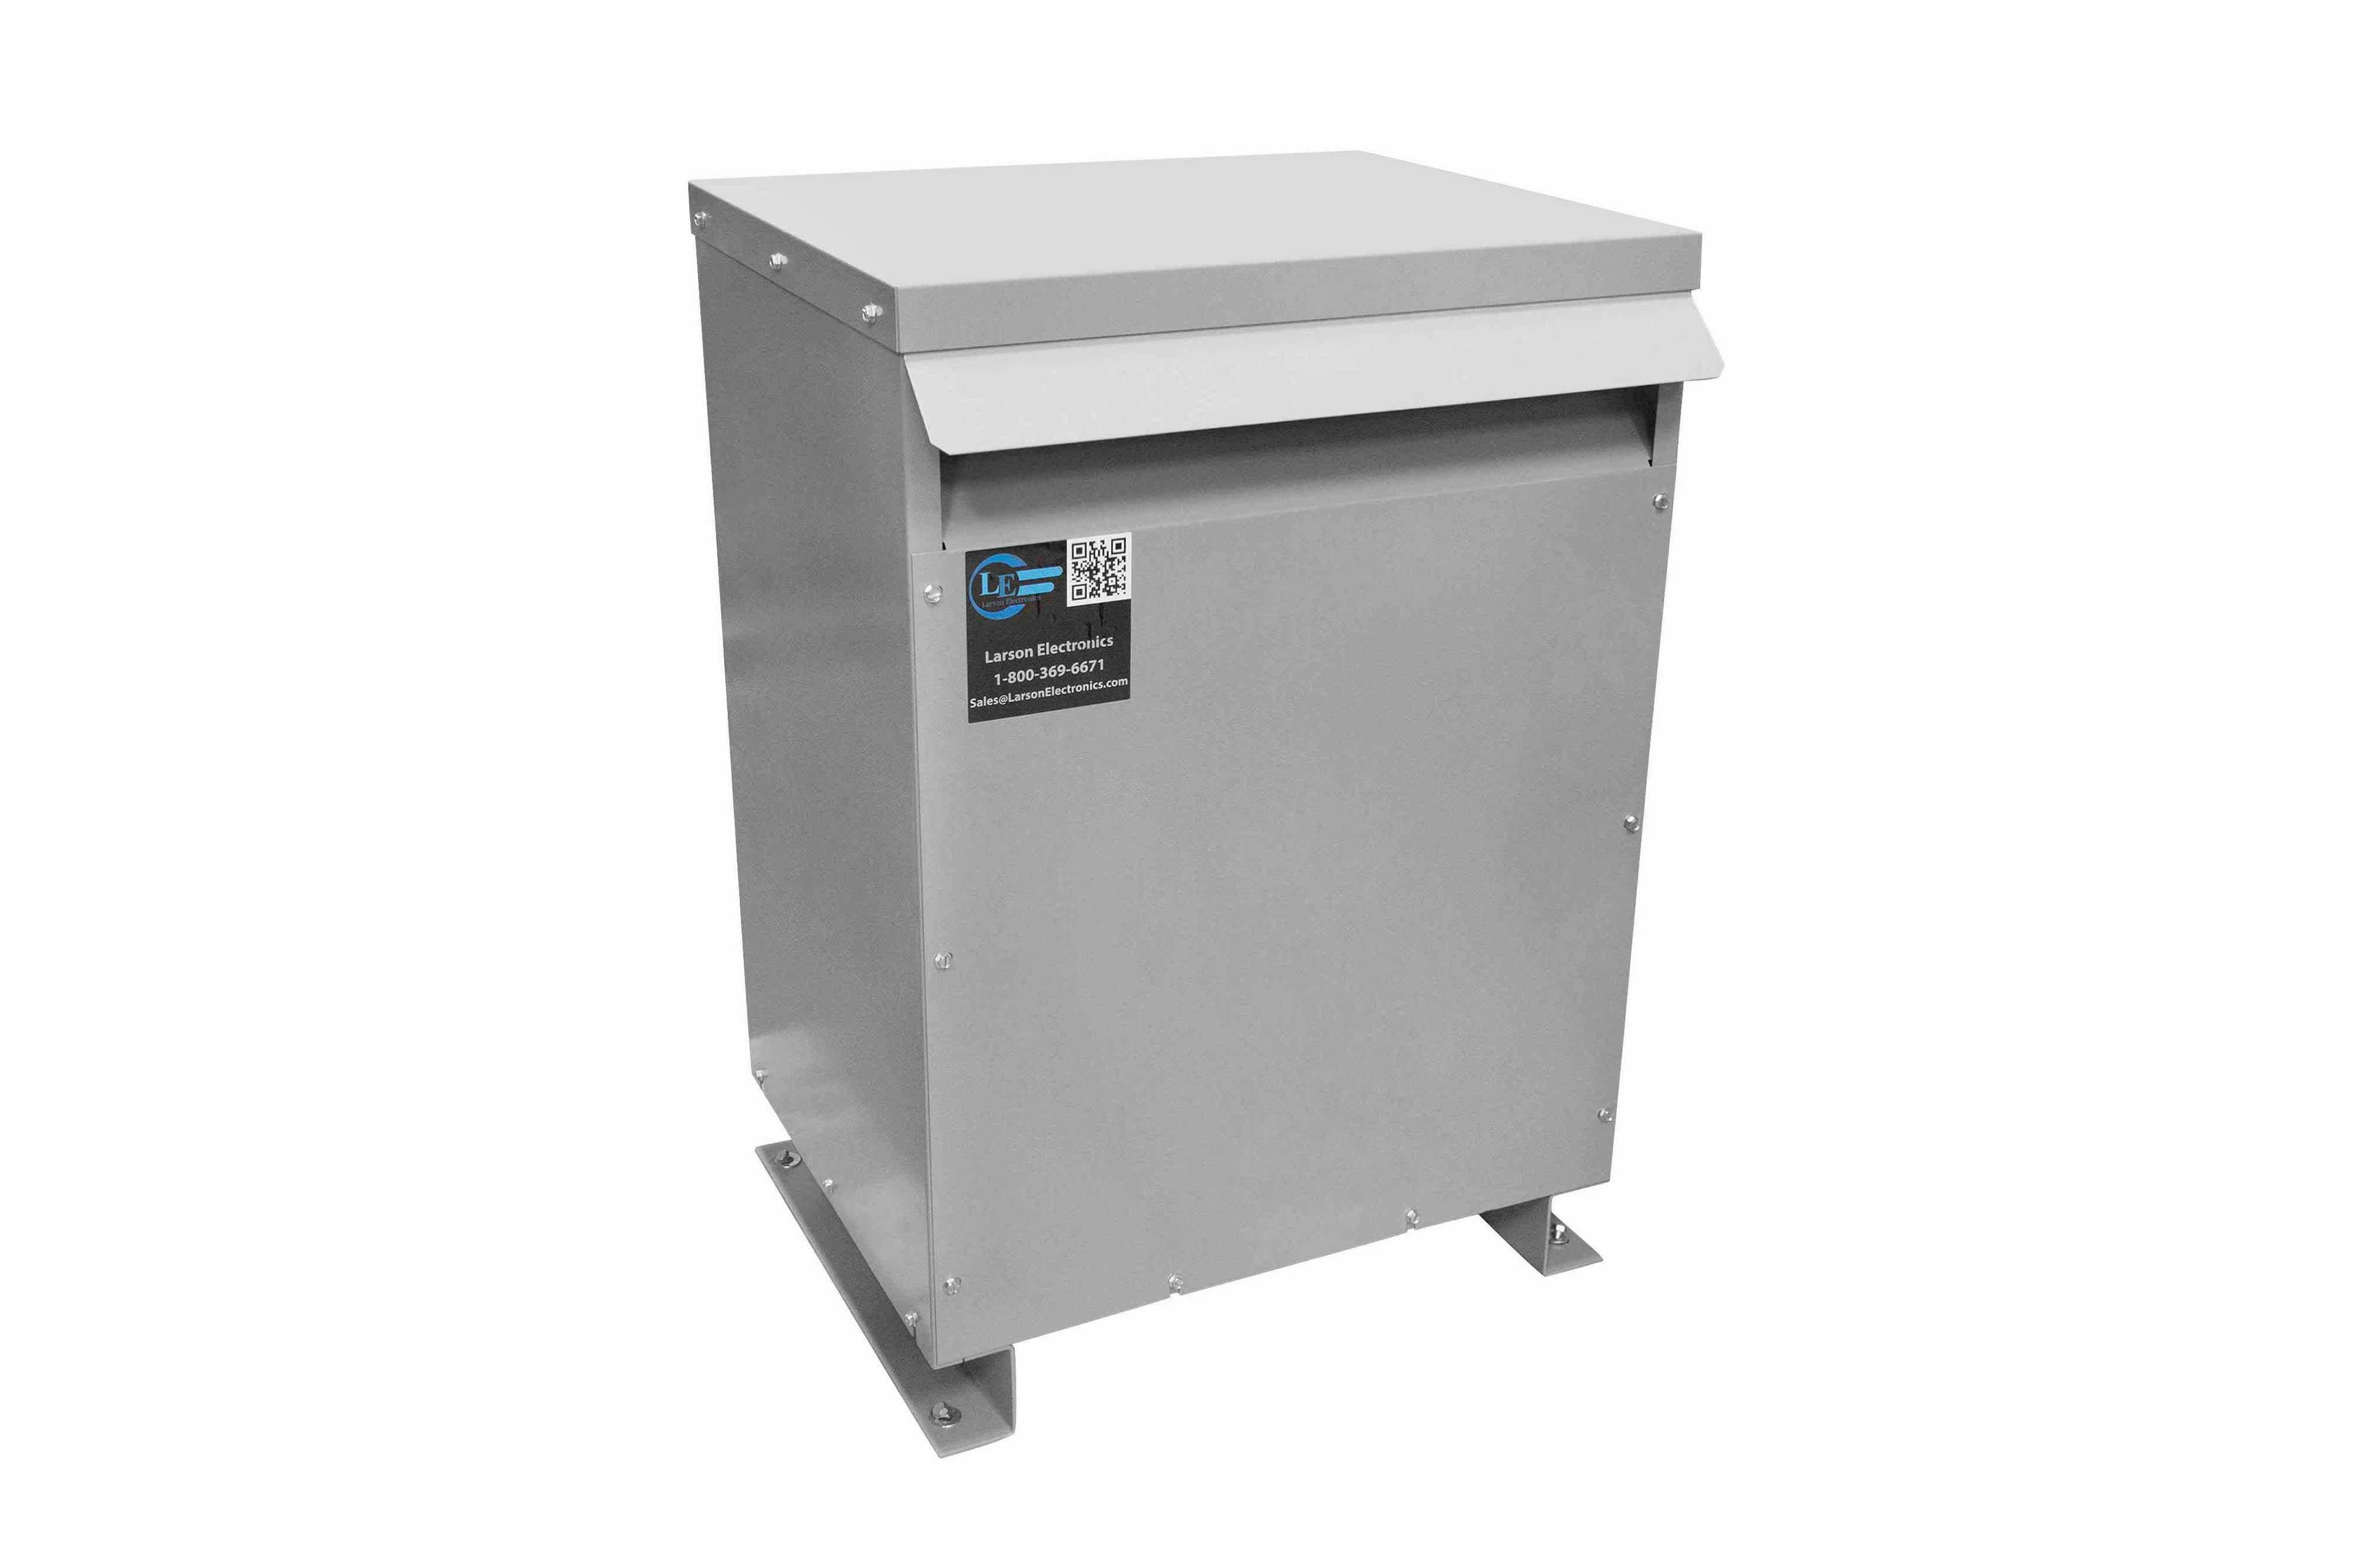 225 kVA 3PH Isolation Transformer, 575V Wye Primary, 415V Delta Secondary, N3R, Ventilated, 60 Hz